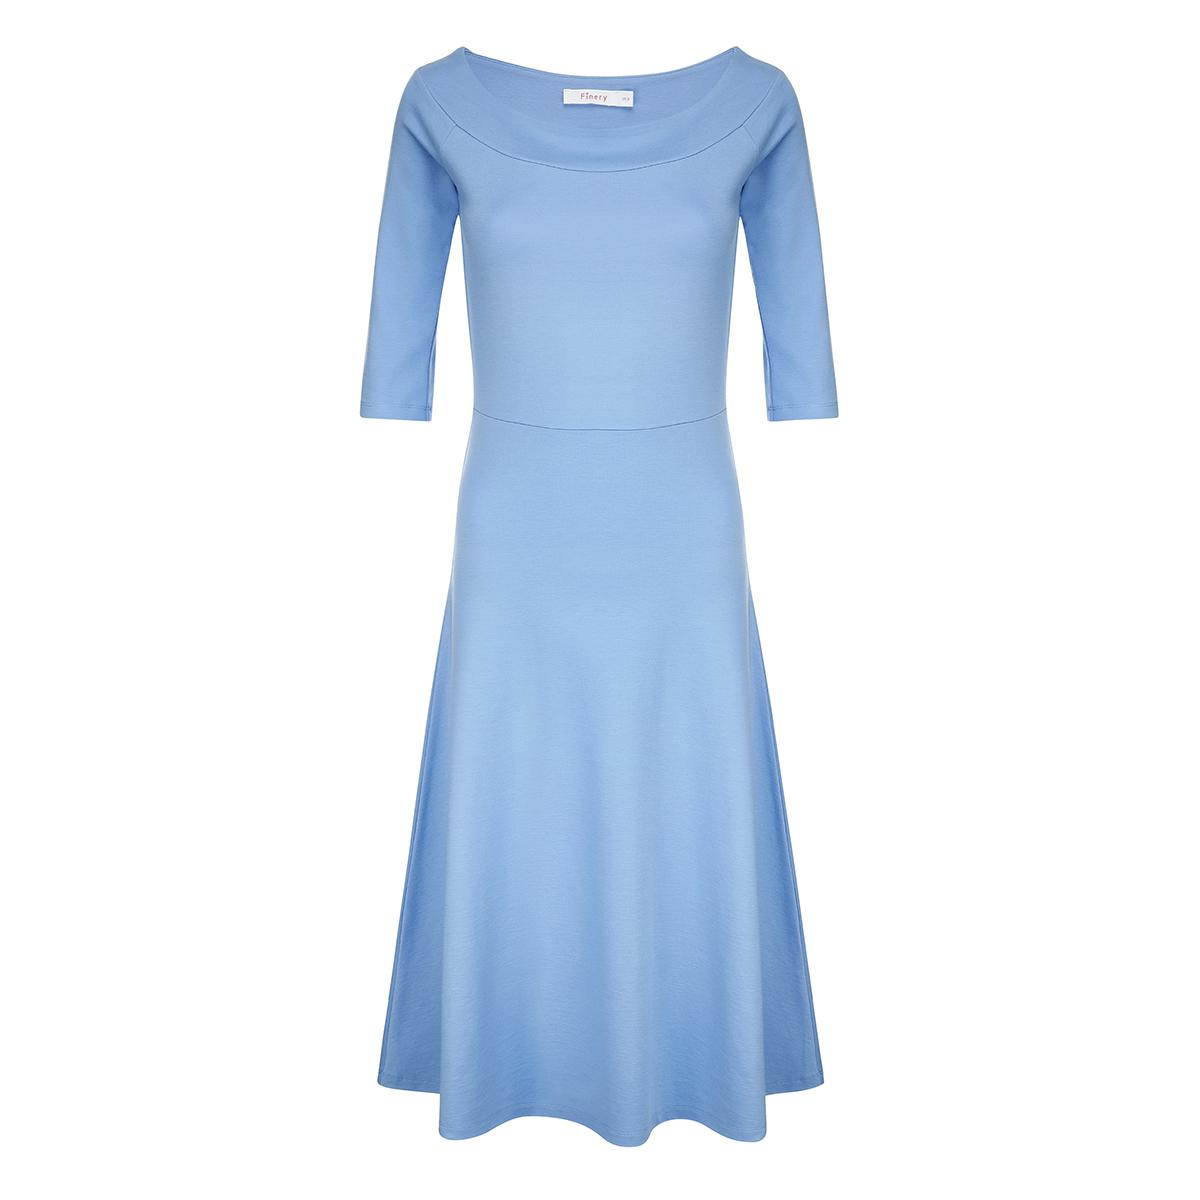 Dudlington Cornflower Blue Off-Shoulder Dress Finery vZFZk